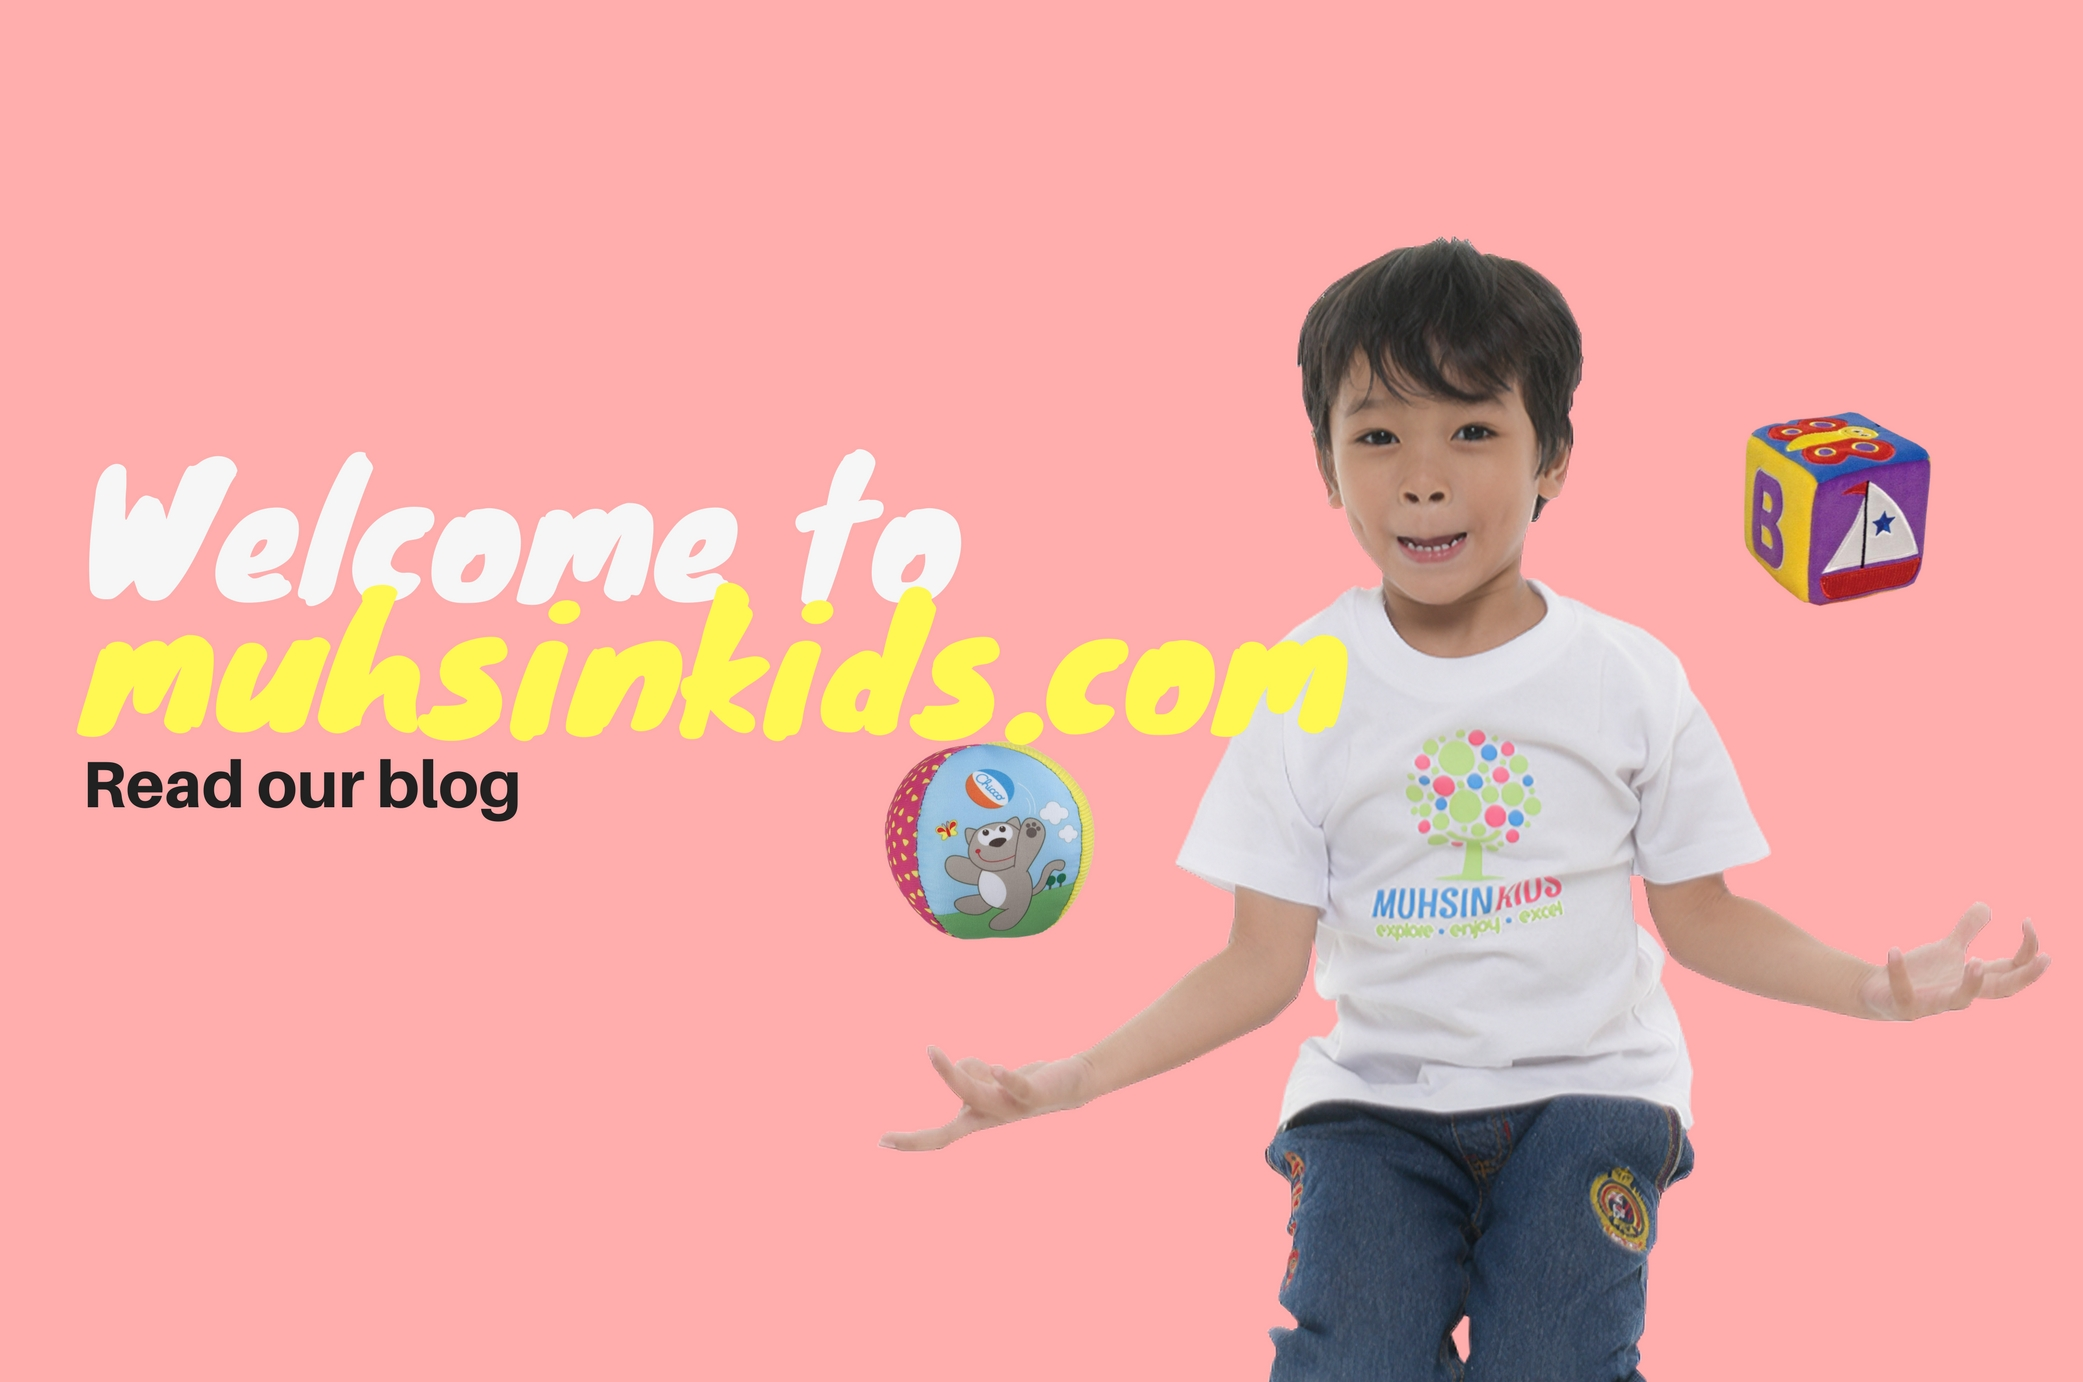 Welcome to muhsinkids.com